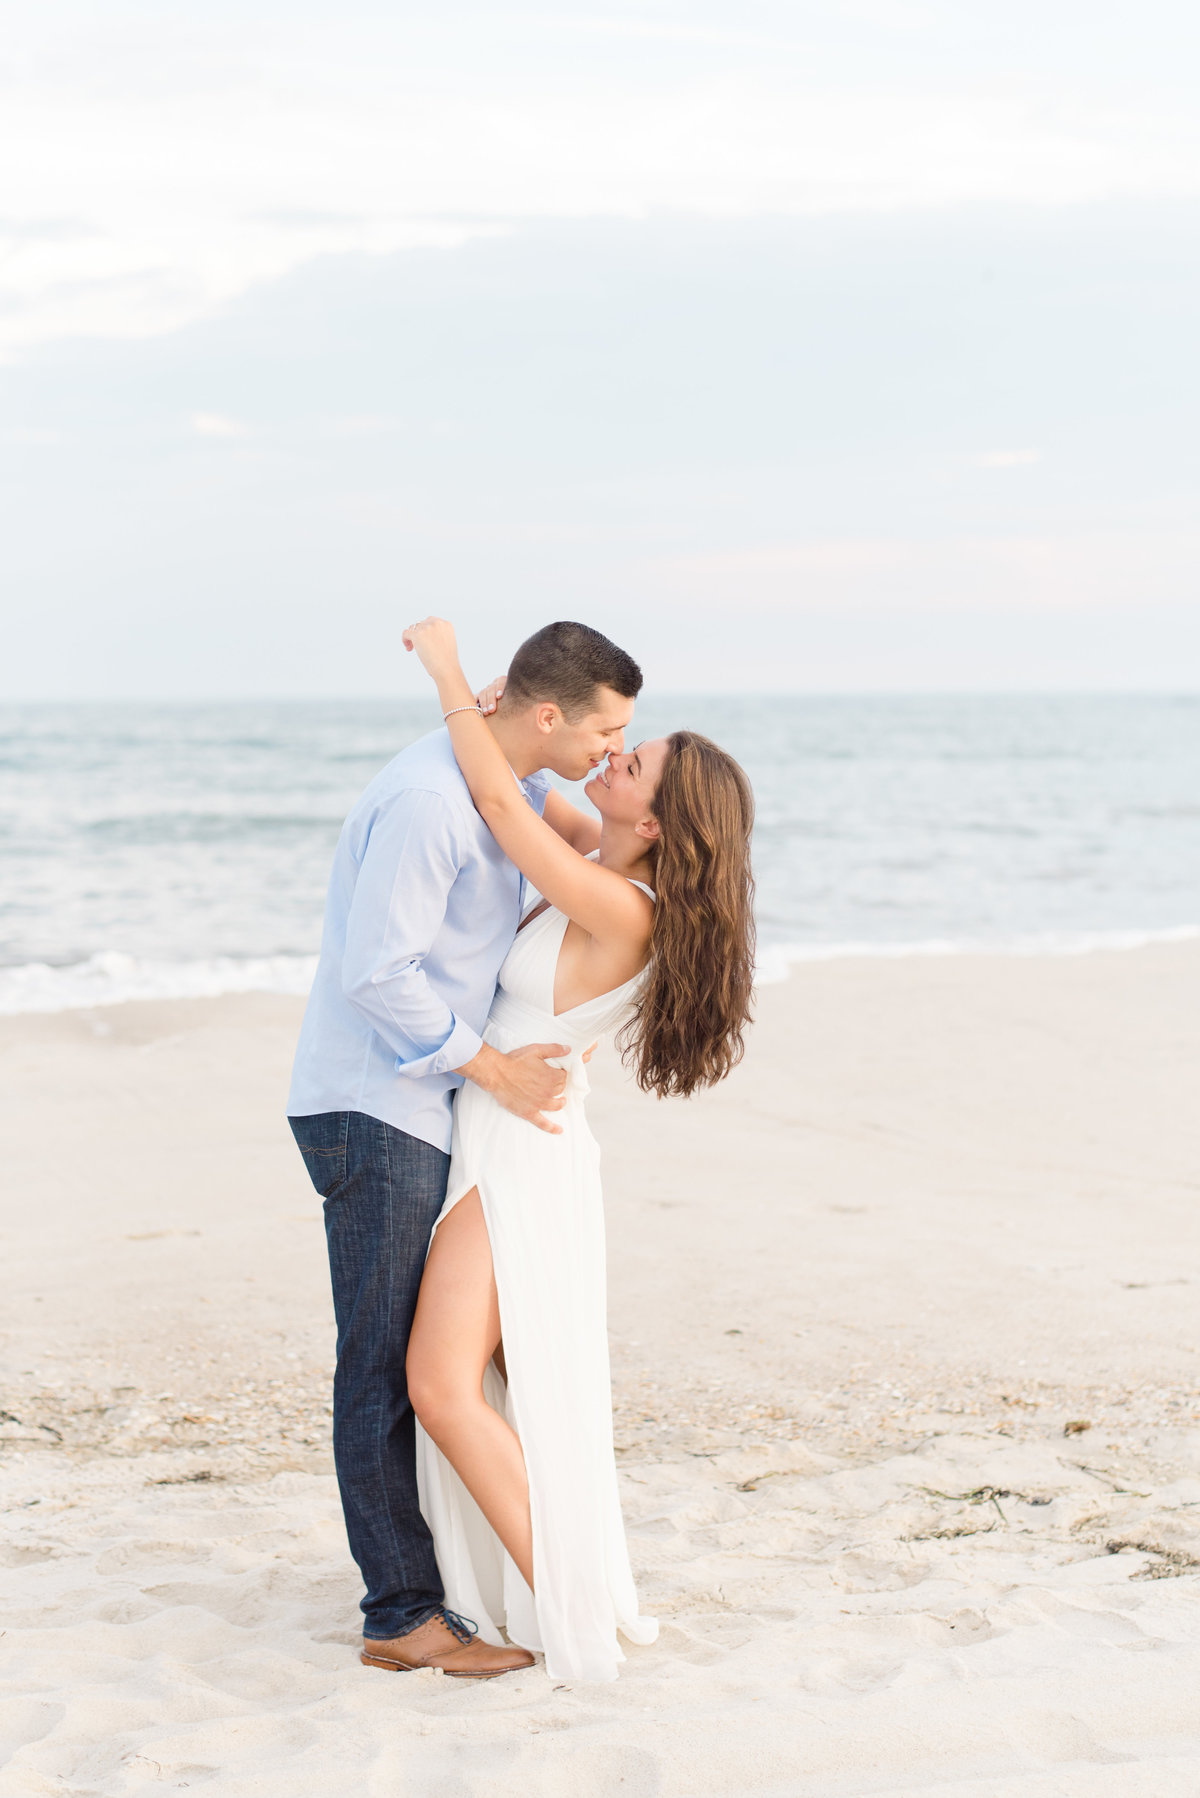 engagement-photography-candid-beach-long-island-ny-jennifer-Lam-Photo